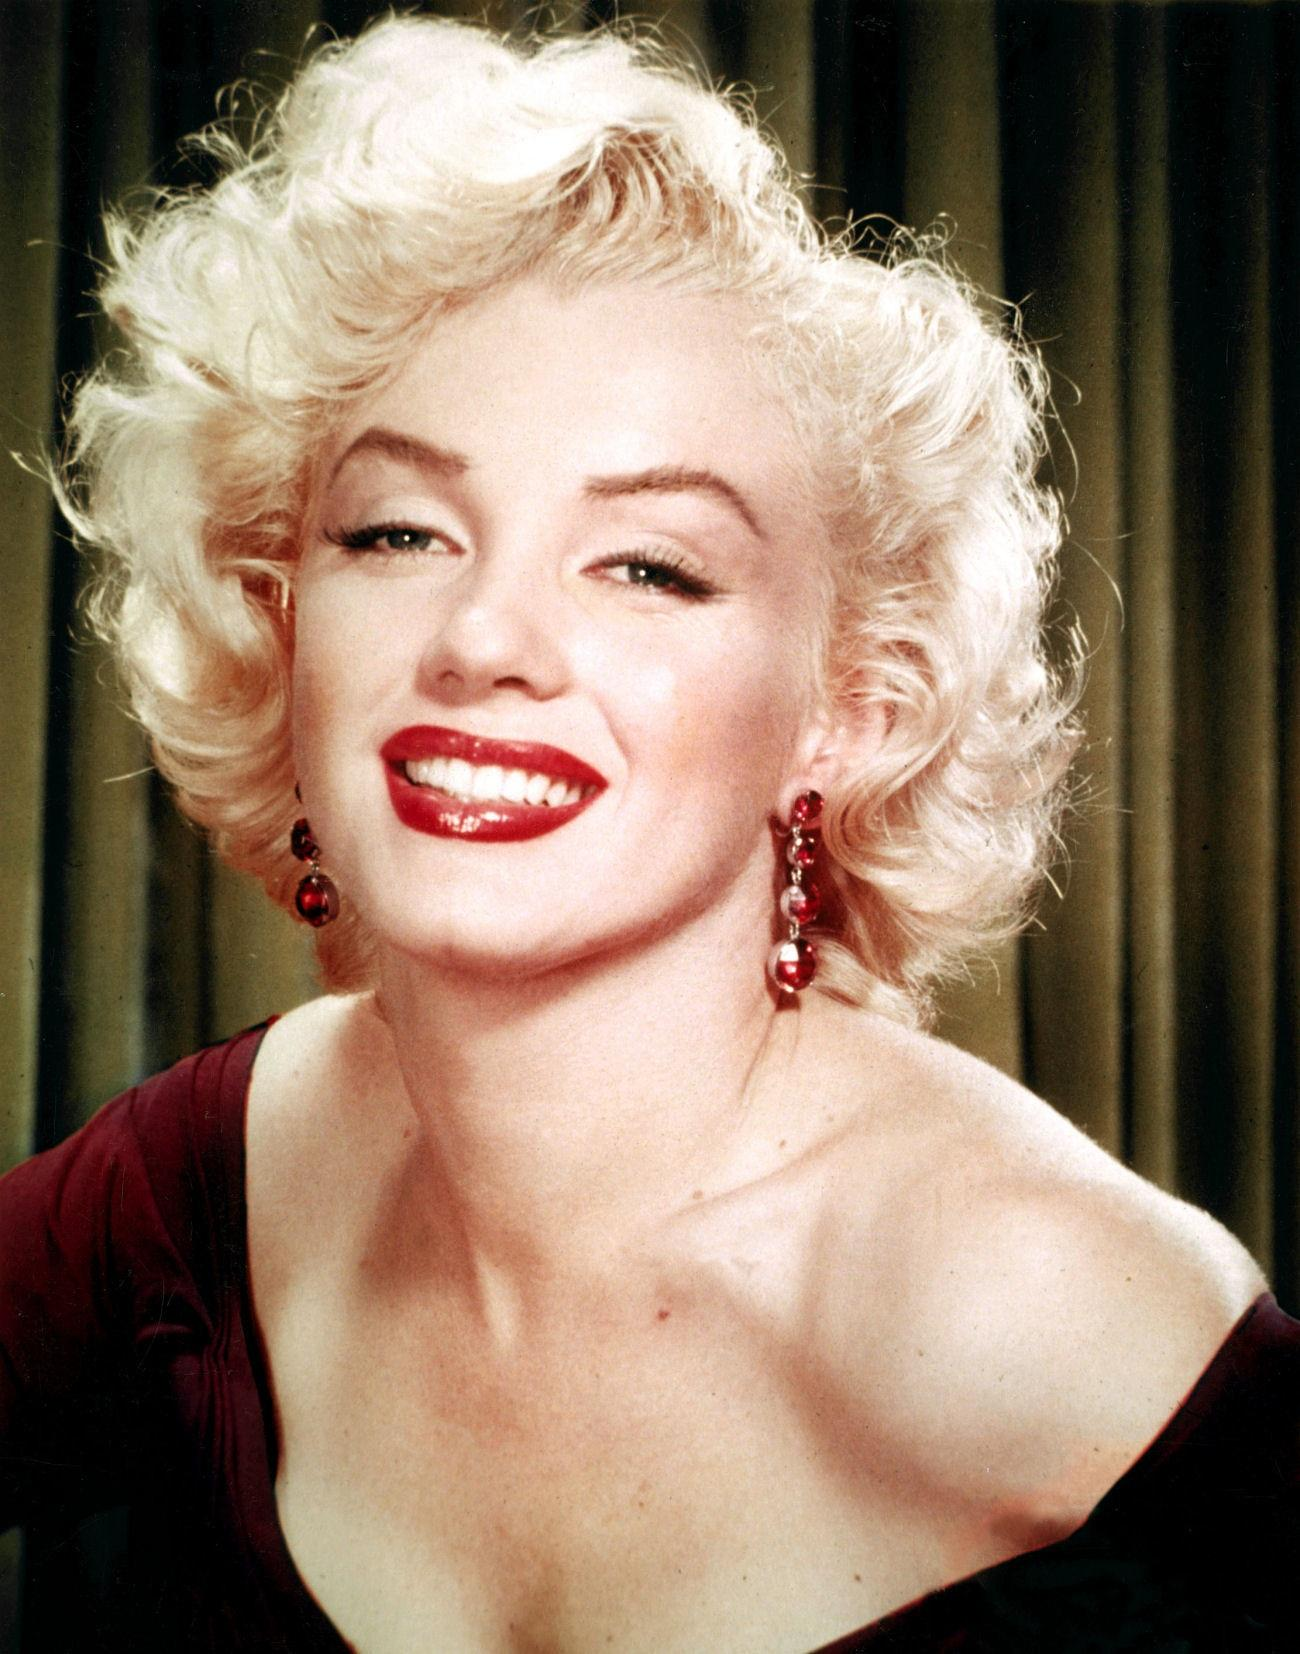 #214 WHO REALLY KILLED MARILYN MONROE WHILE SUZIE SCHMID, LINDA BOLANDER & JOHNNY LINDEN WERE AT INDEPENDENCE KS ON 8-5-1962, WHEN WE HEARD ON THE RADIO MARILYN DIED